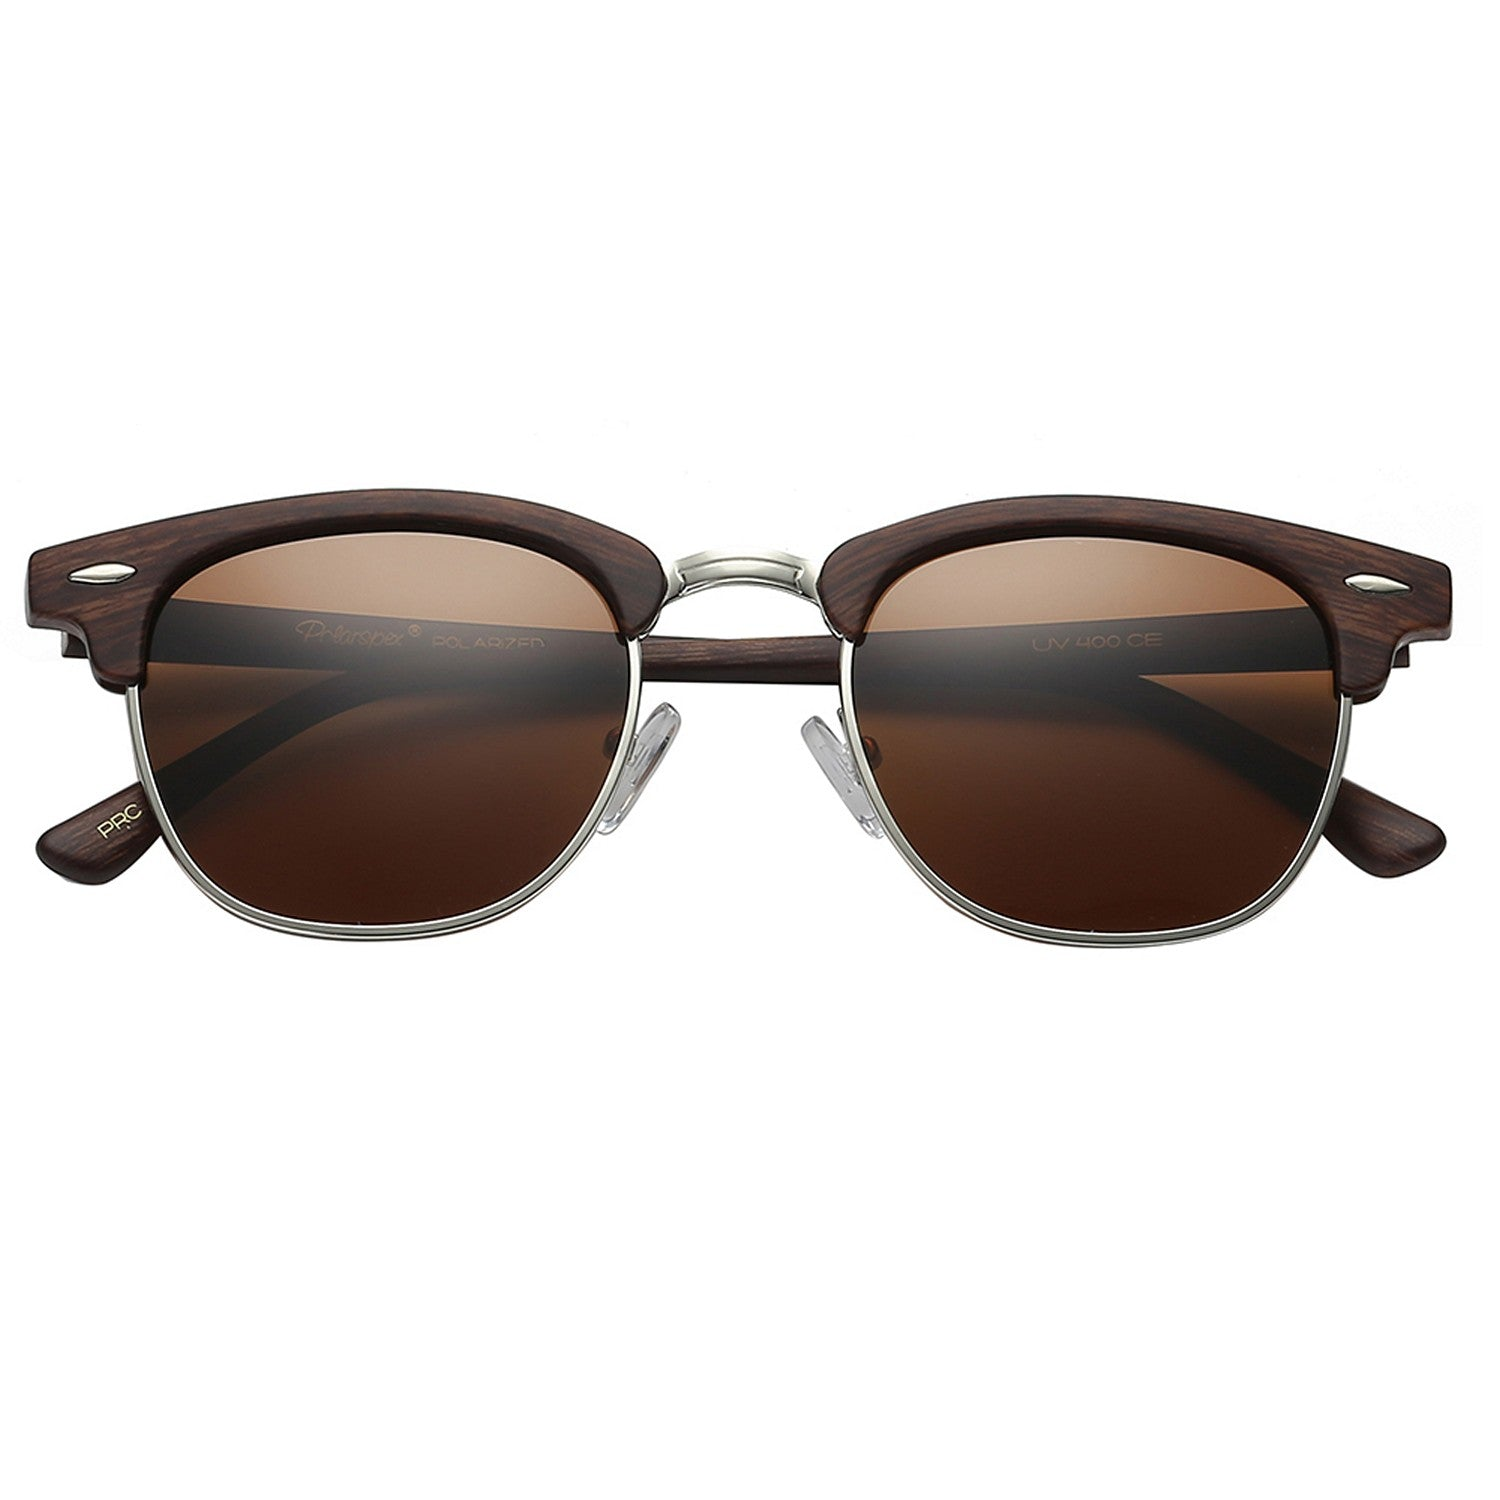 Polarspex Polarized Malcom Half Frame Semi-Rimless Style Unisex Sunglasses with Wood Grain Brown Frames and Brown Lenses